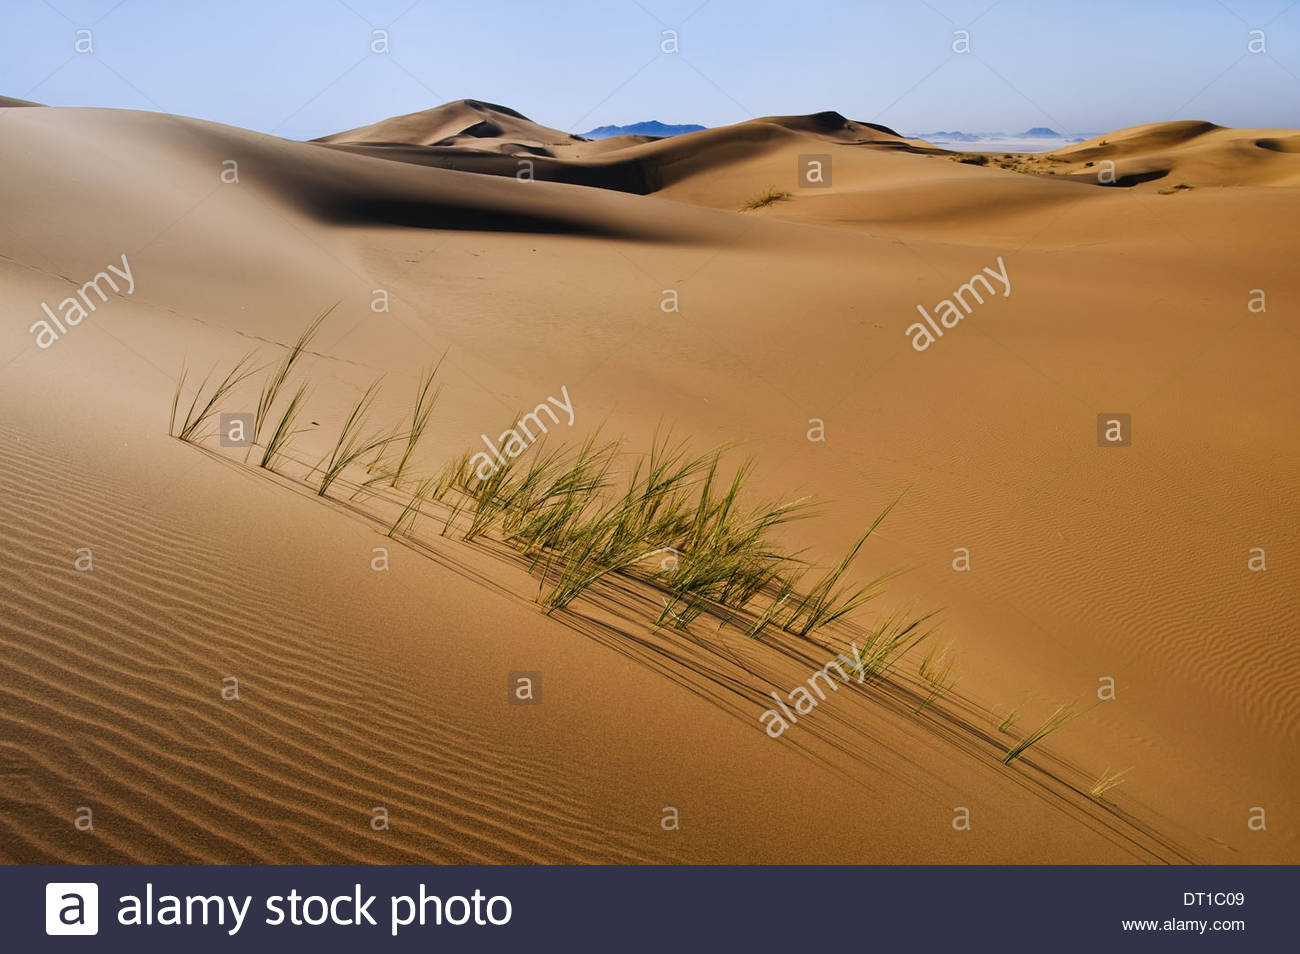 Namib-Naukluft National Park Namibia Grasses in sand dunes Namib-Naukluft National Park - Stock Image